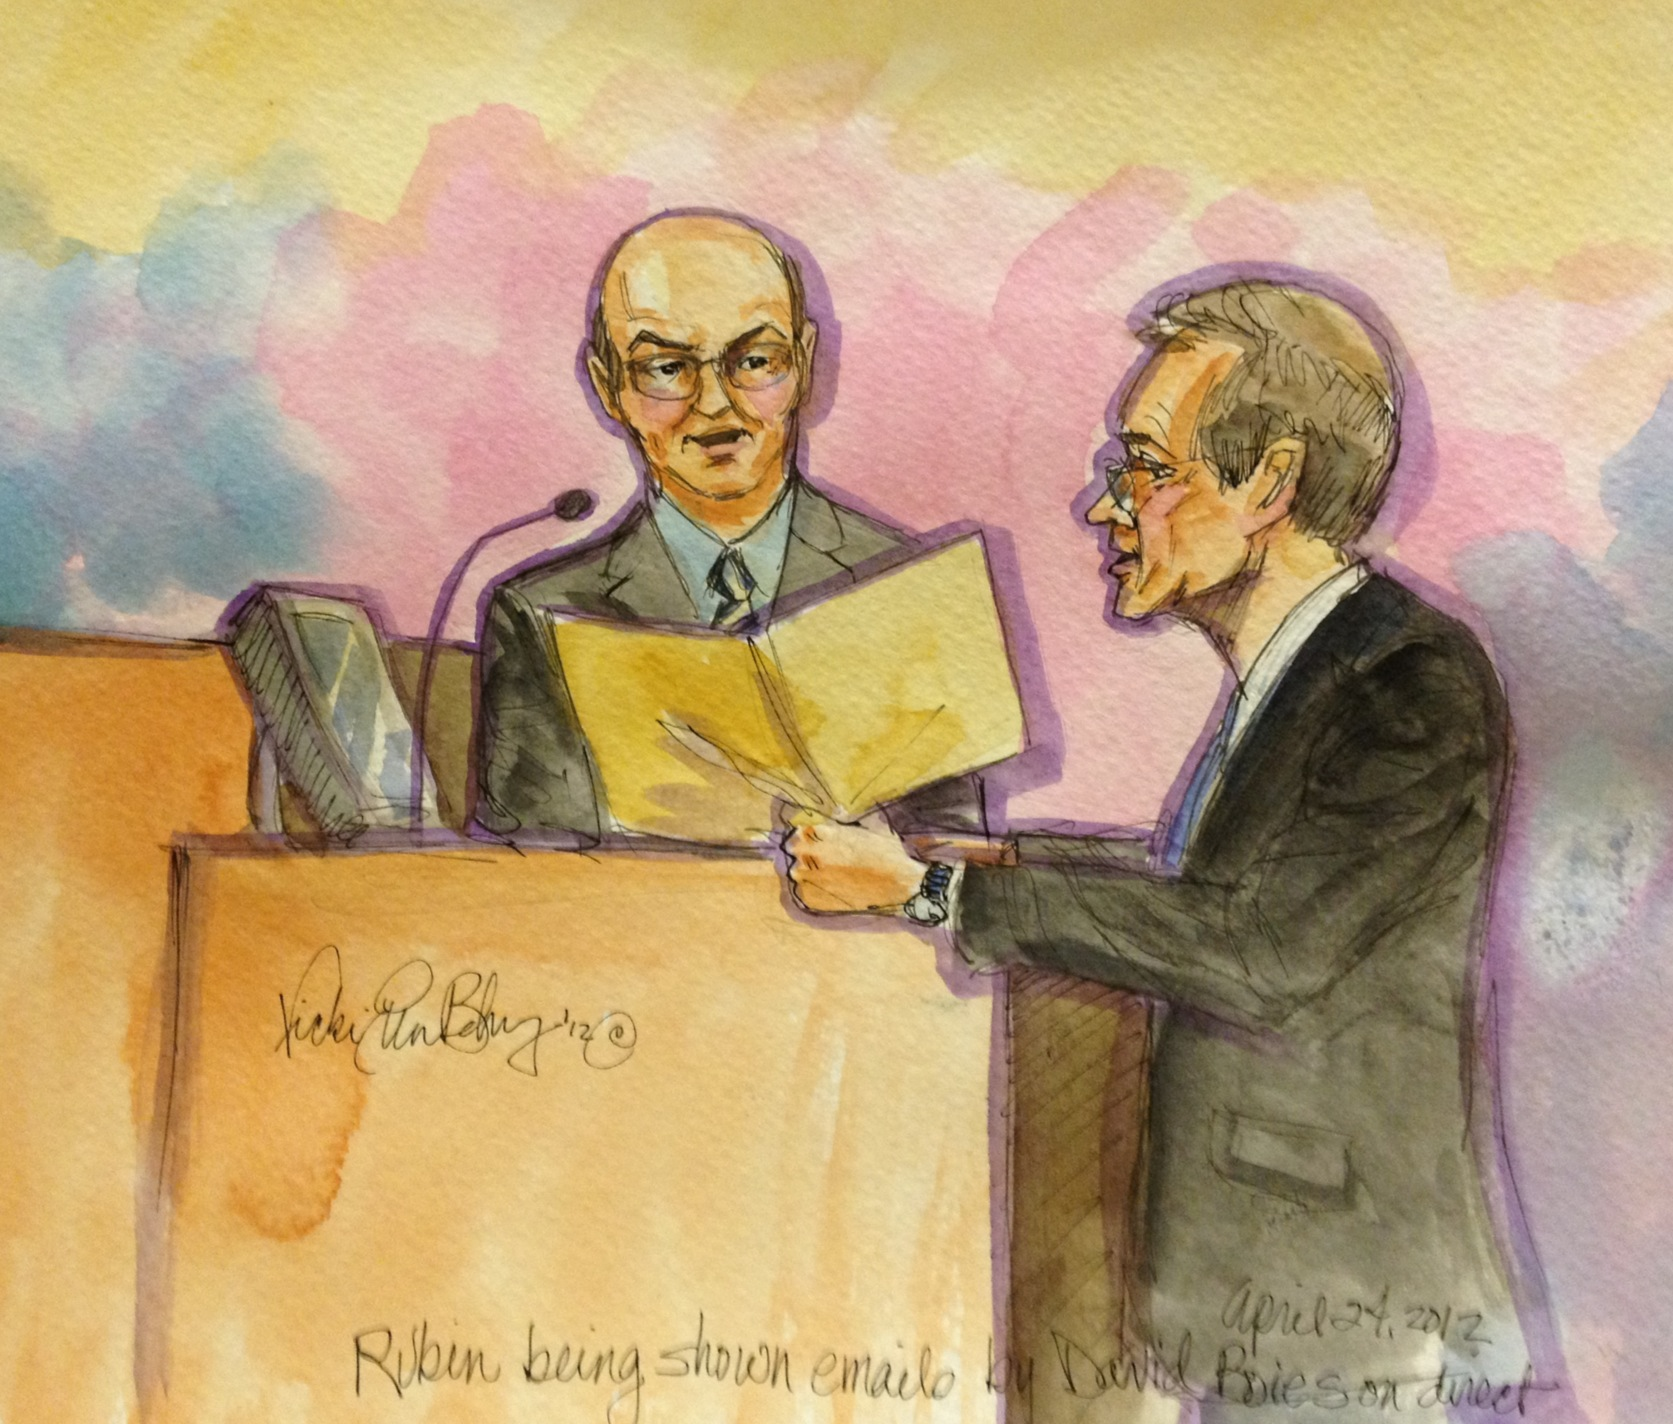 Andy Rubin on the stand